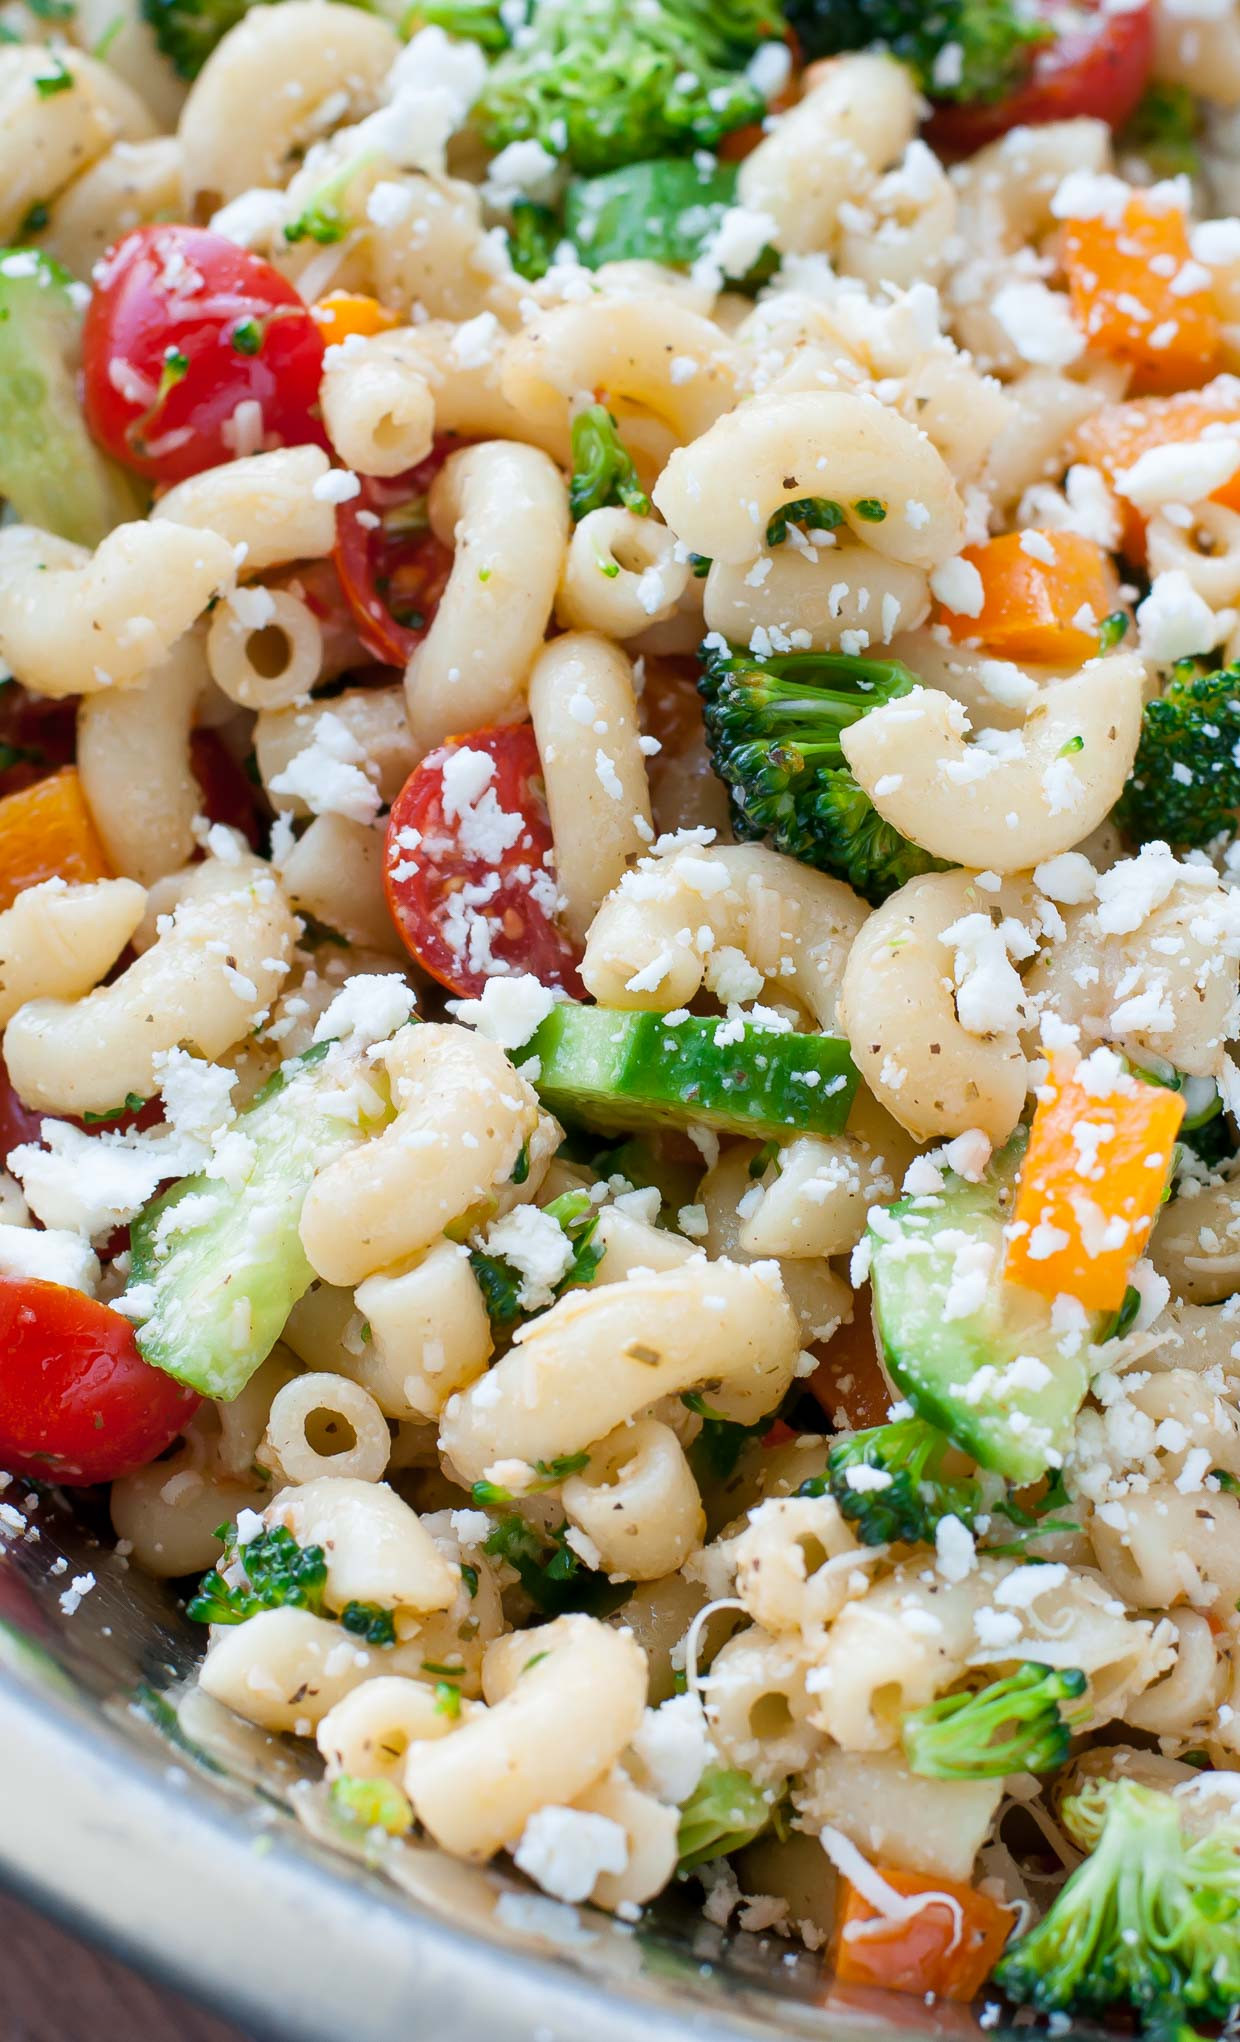 Vegan Pasta Salad Recipes  ve arian pasta salad